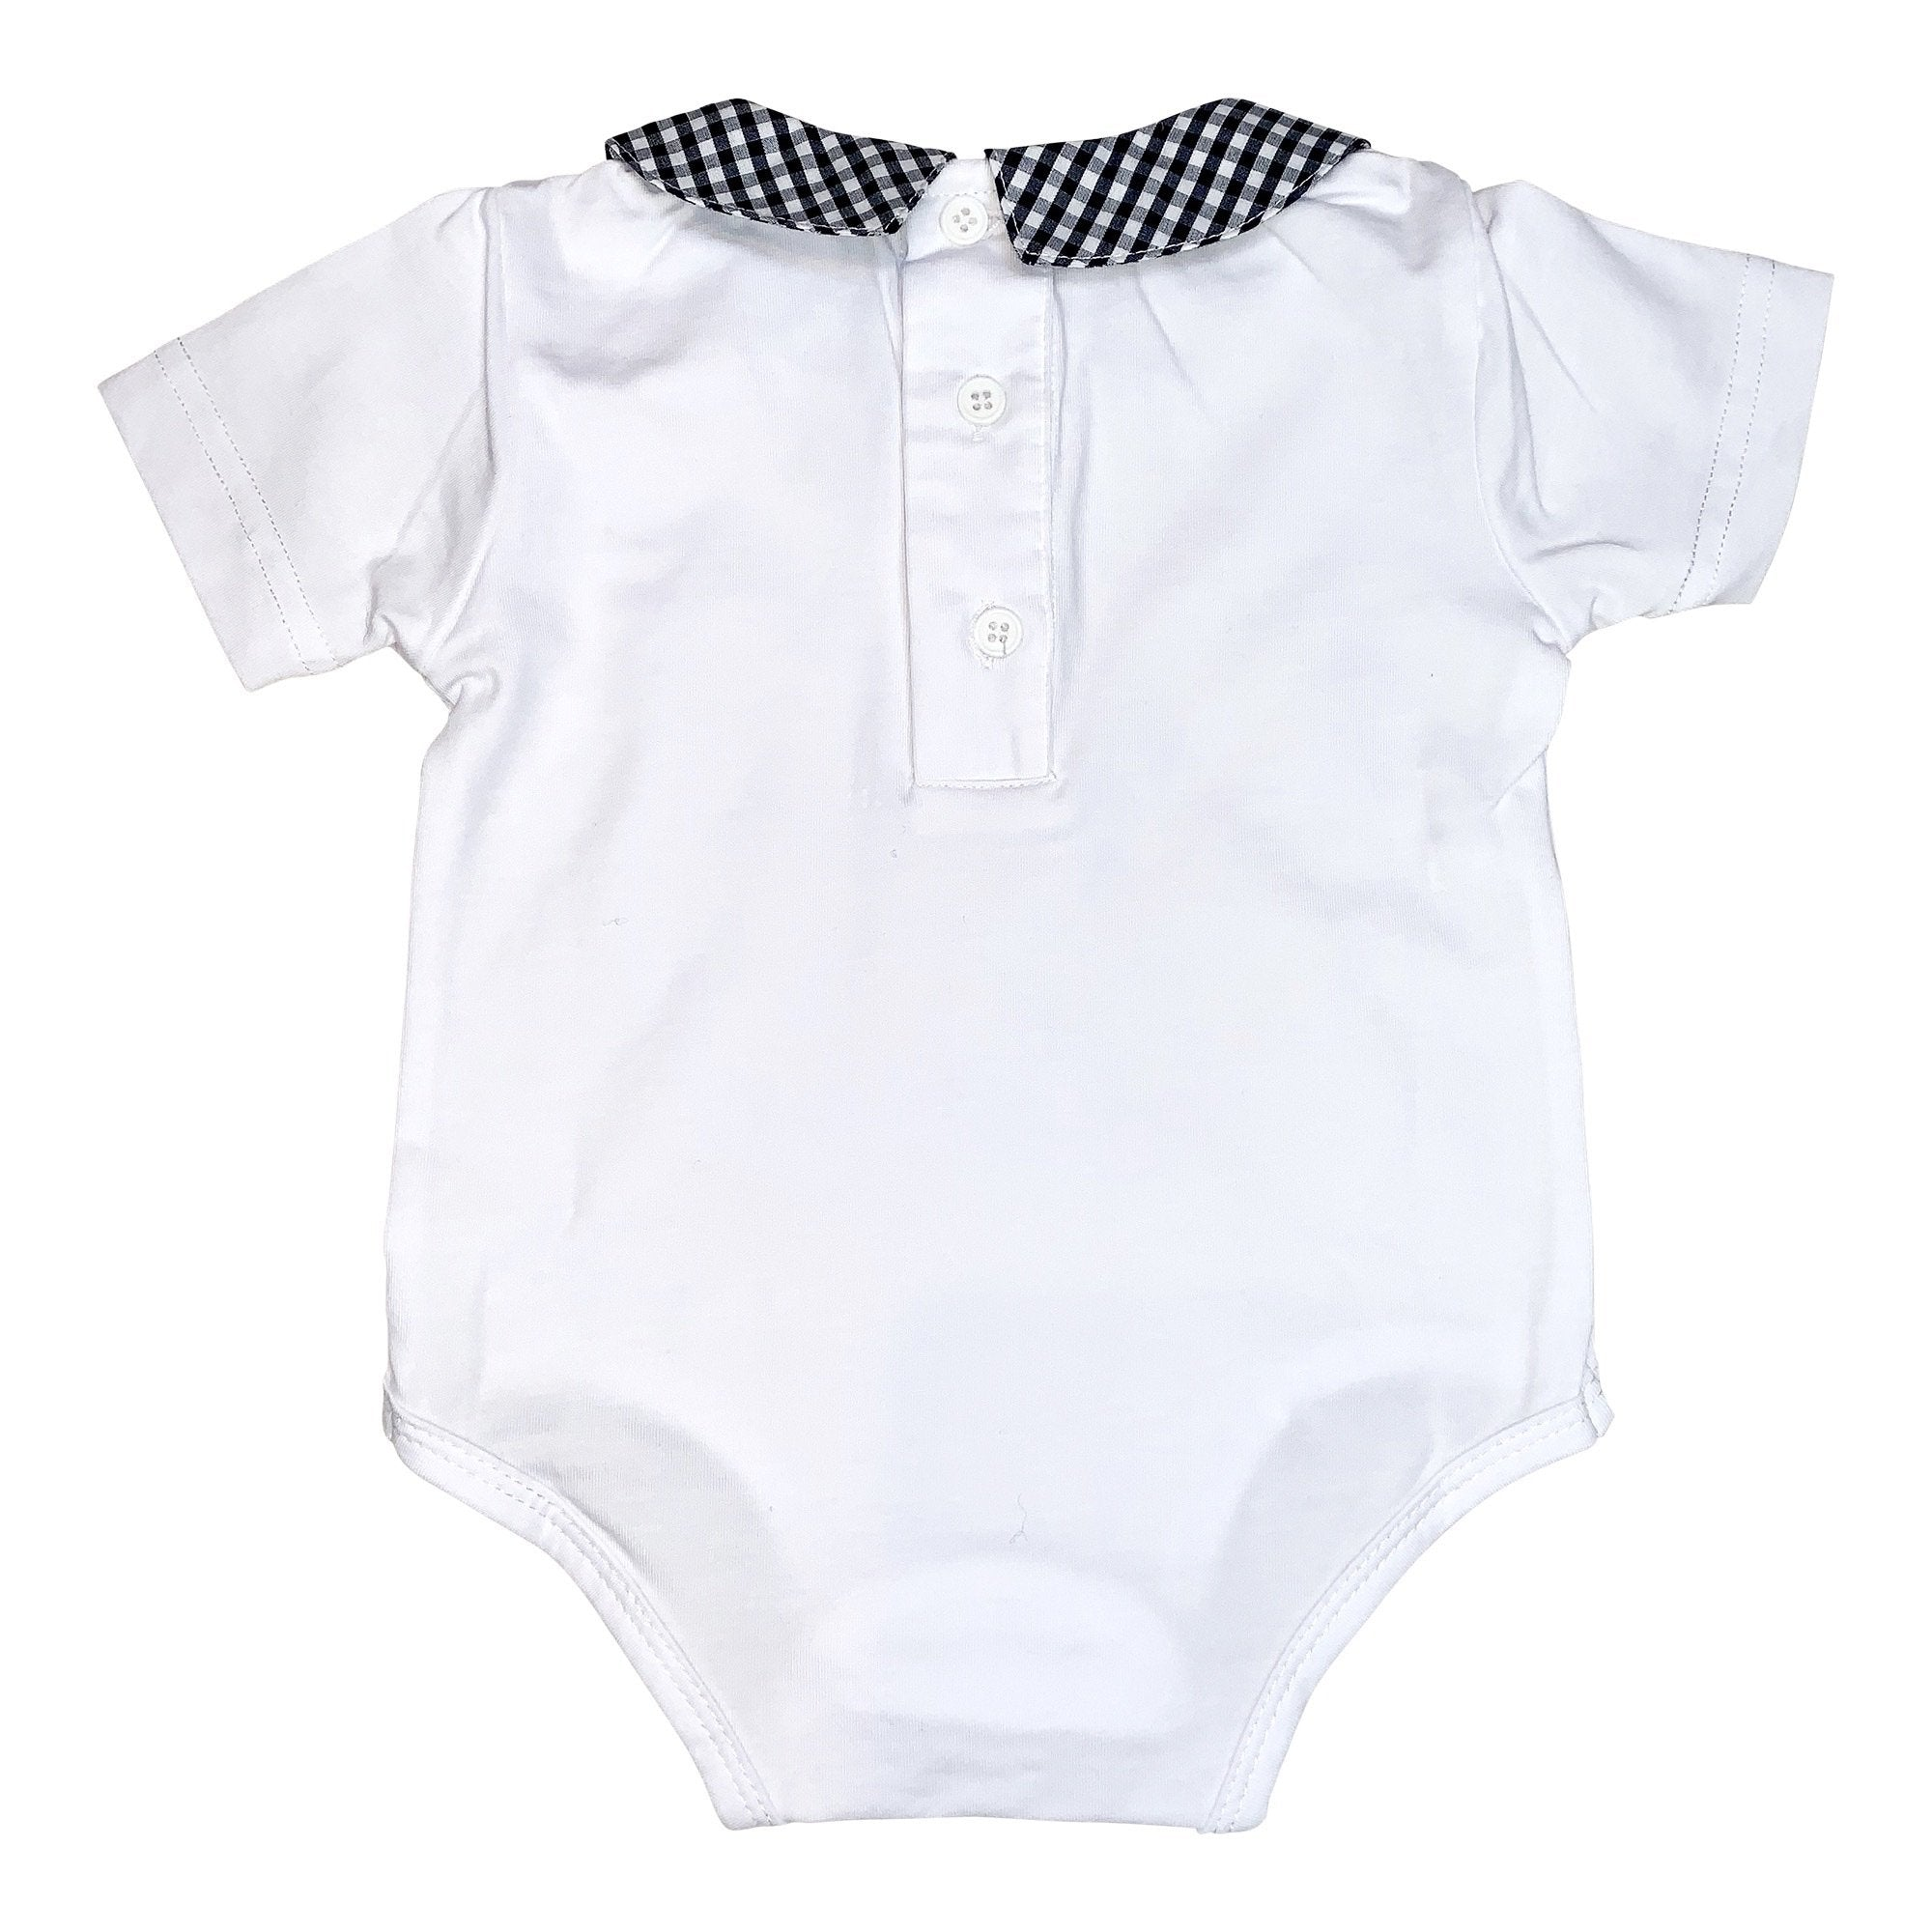 BOYS SHORT SLEEVE NAVY GINGHAM COLLARED ROMPER